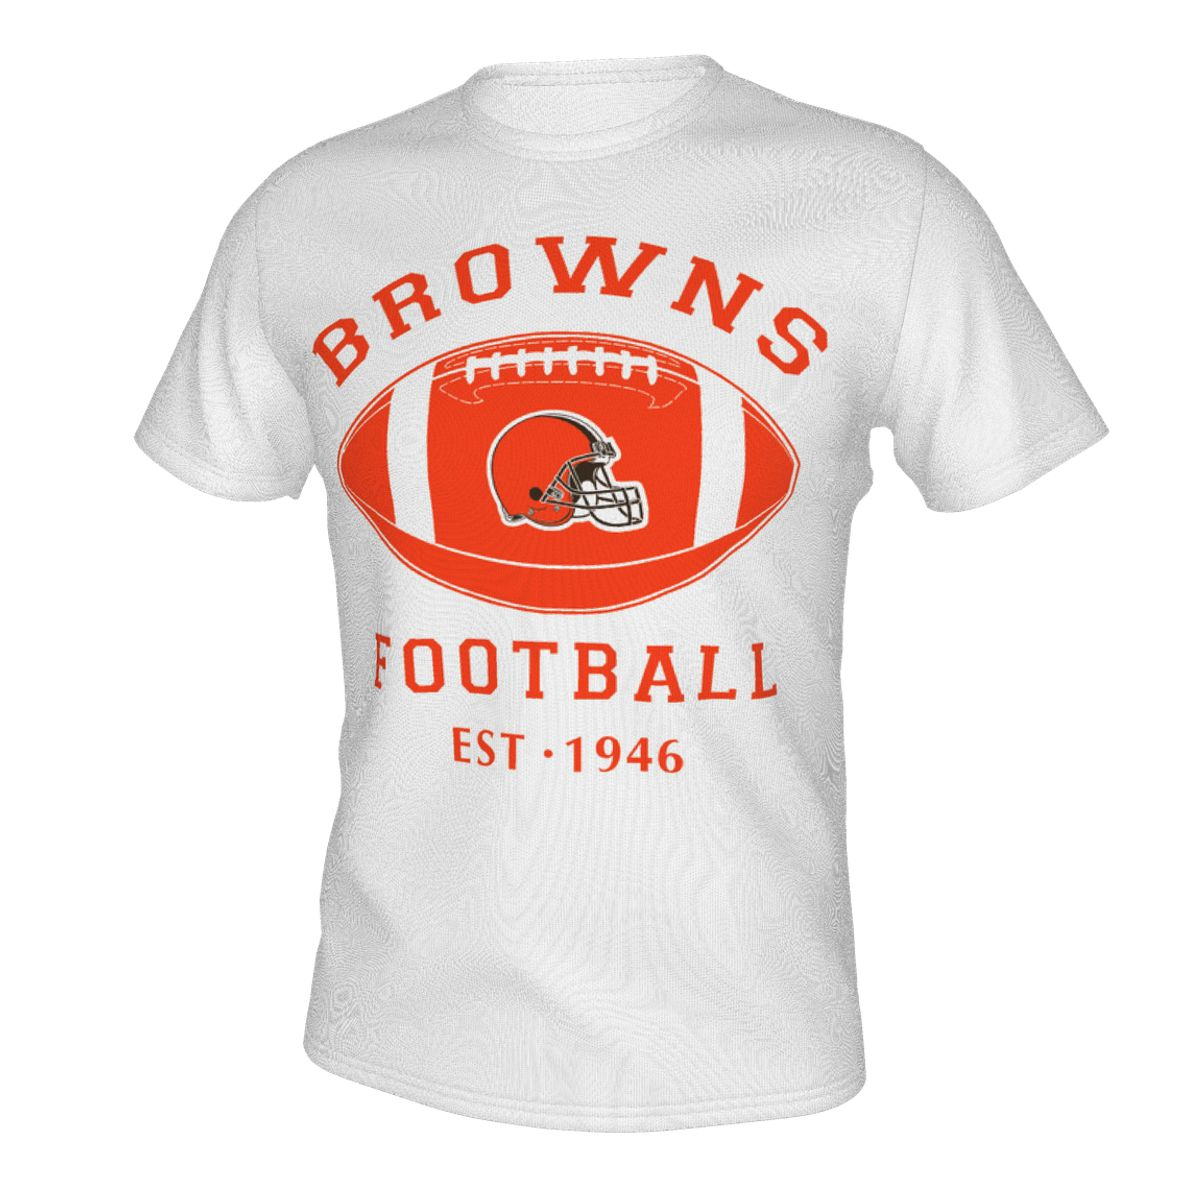 Footabll Browns T-shirts For Men